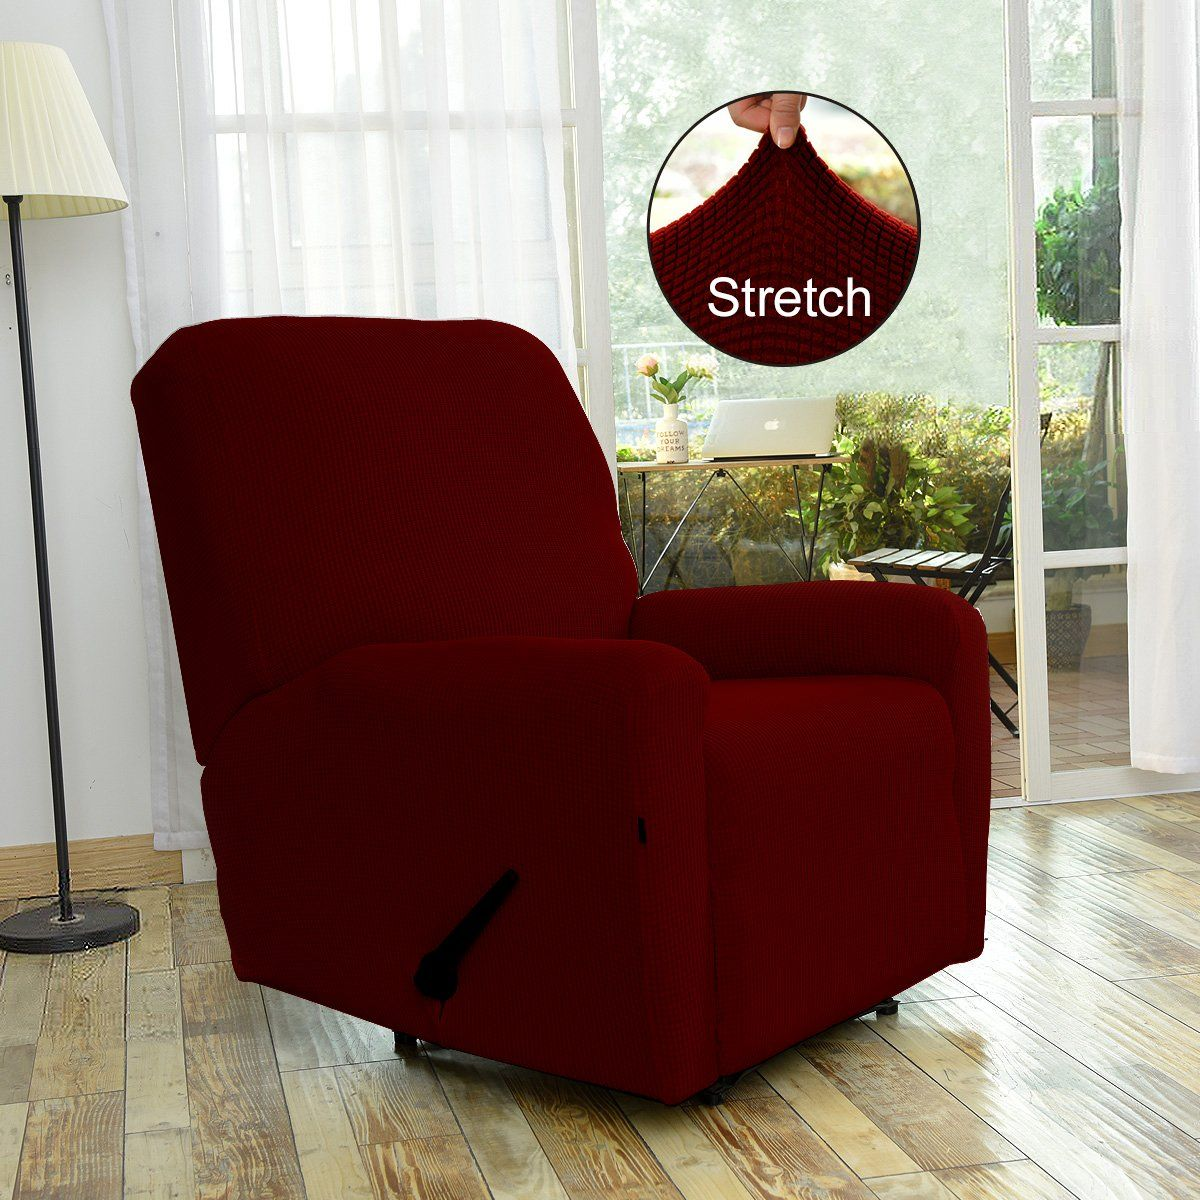 Easygoing Recliner Stretch Sofa Slipcover Sofa Cover 4pieces Furniture Protector Couch Soft With Elastic Bottom Kidspoly In 2020 Furniture Sofa Covers Slipcovered Sofa